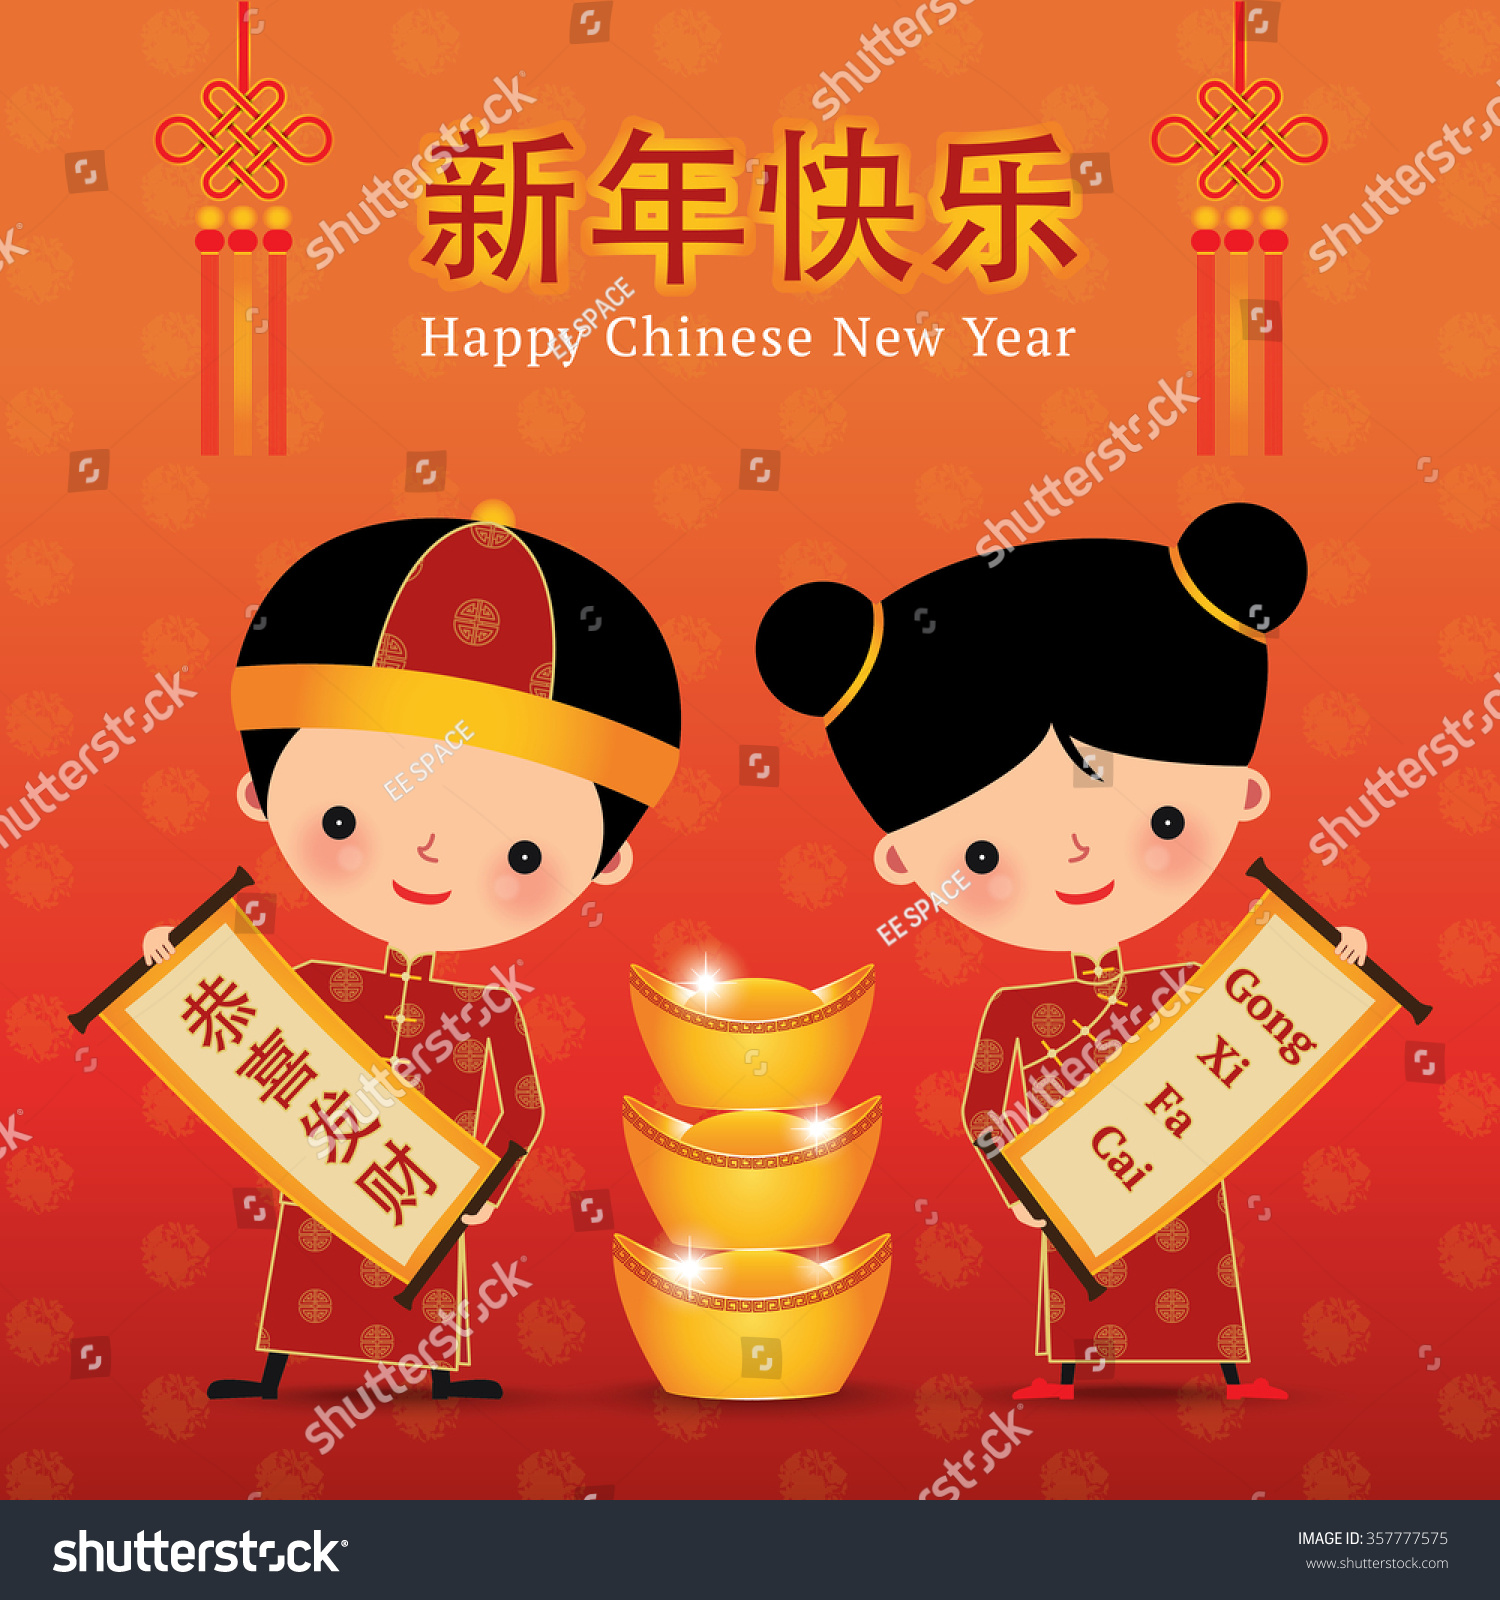 Chinese new year couple gong xi stock vector 357777575 shutterstock chinese new year couple with gong xi fa cai greeting word meaning wish kristyandbryce Image collections